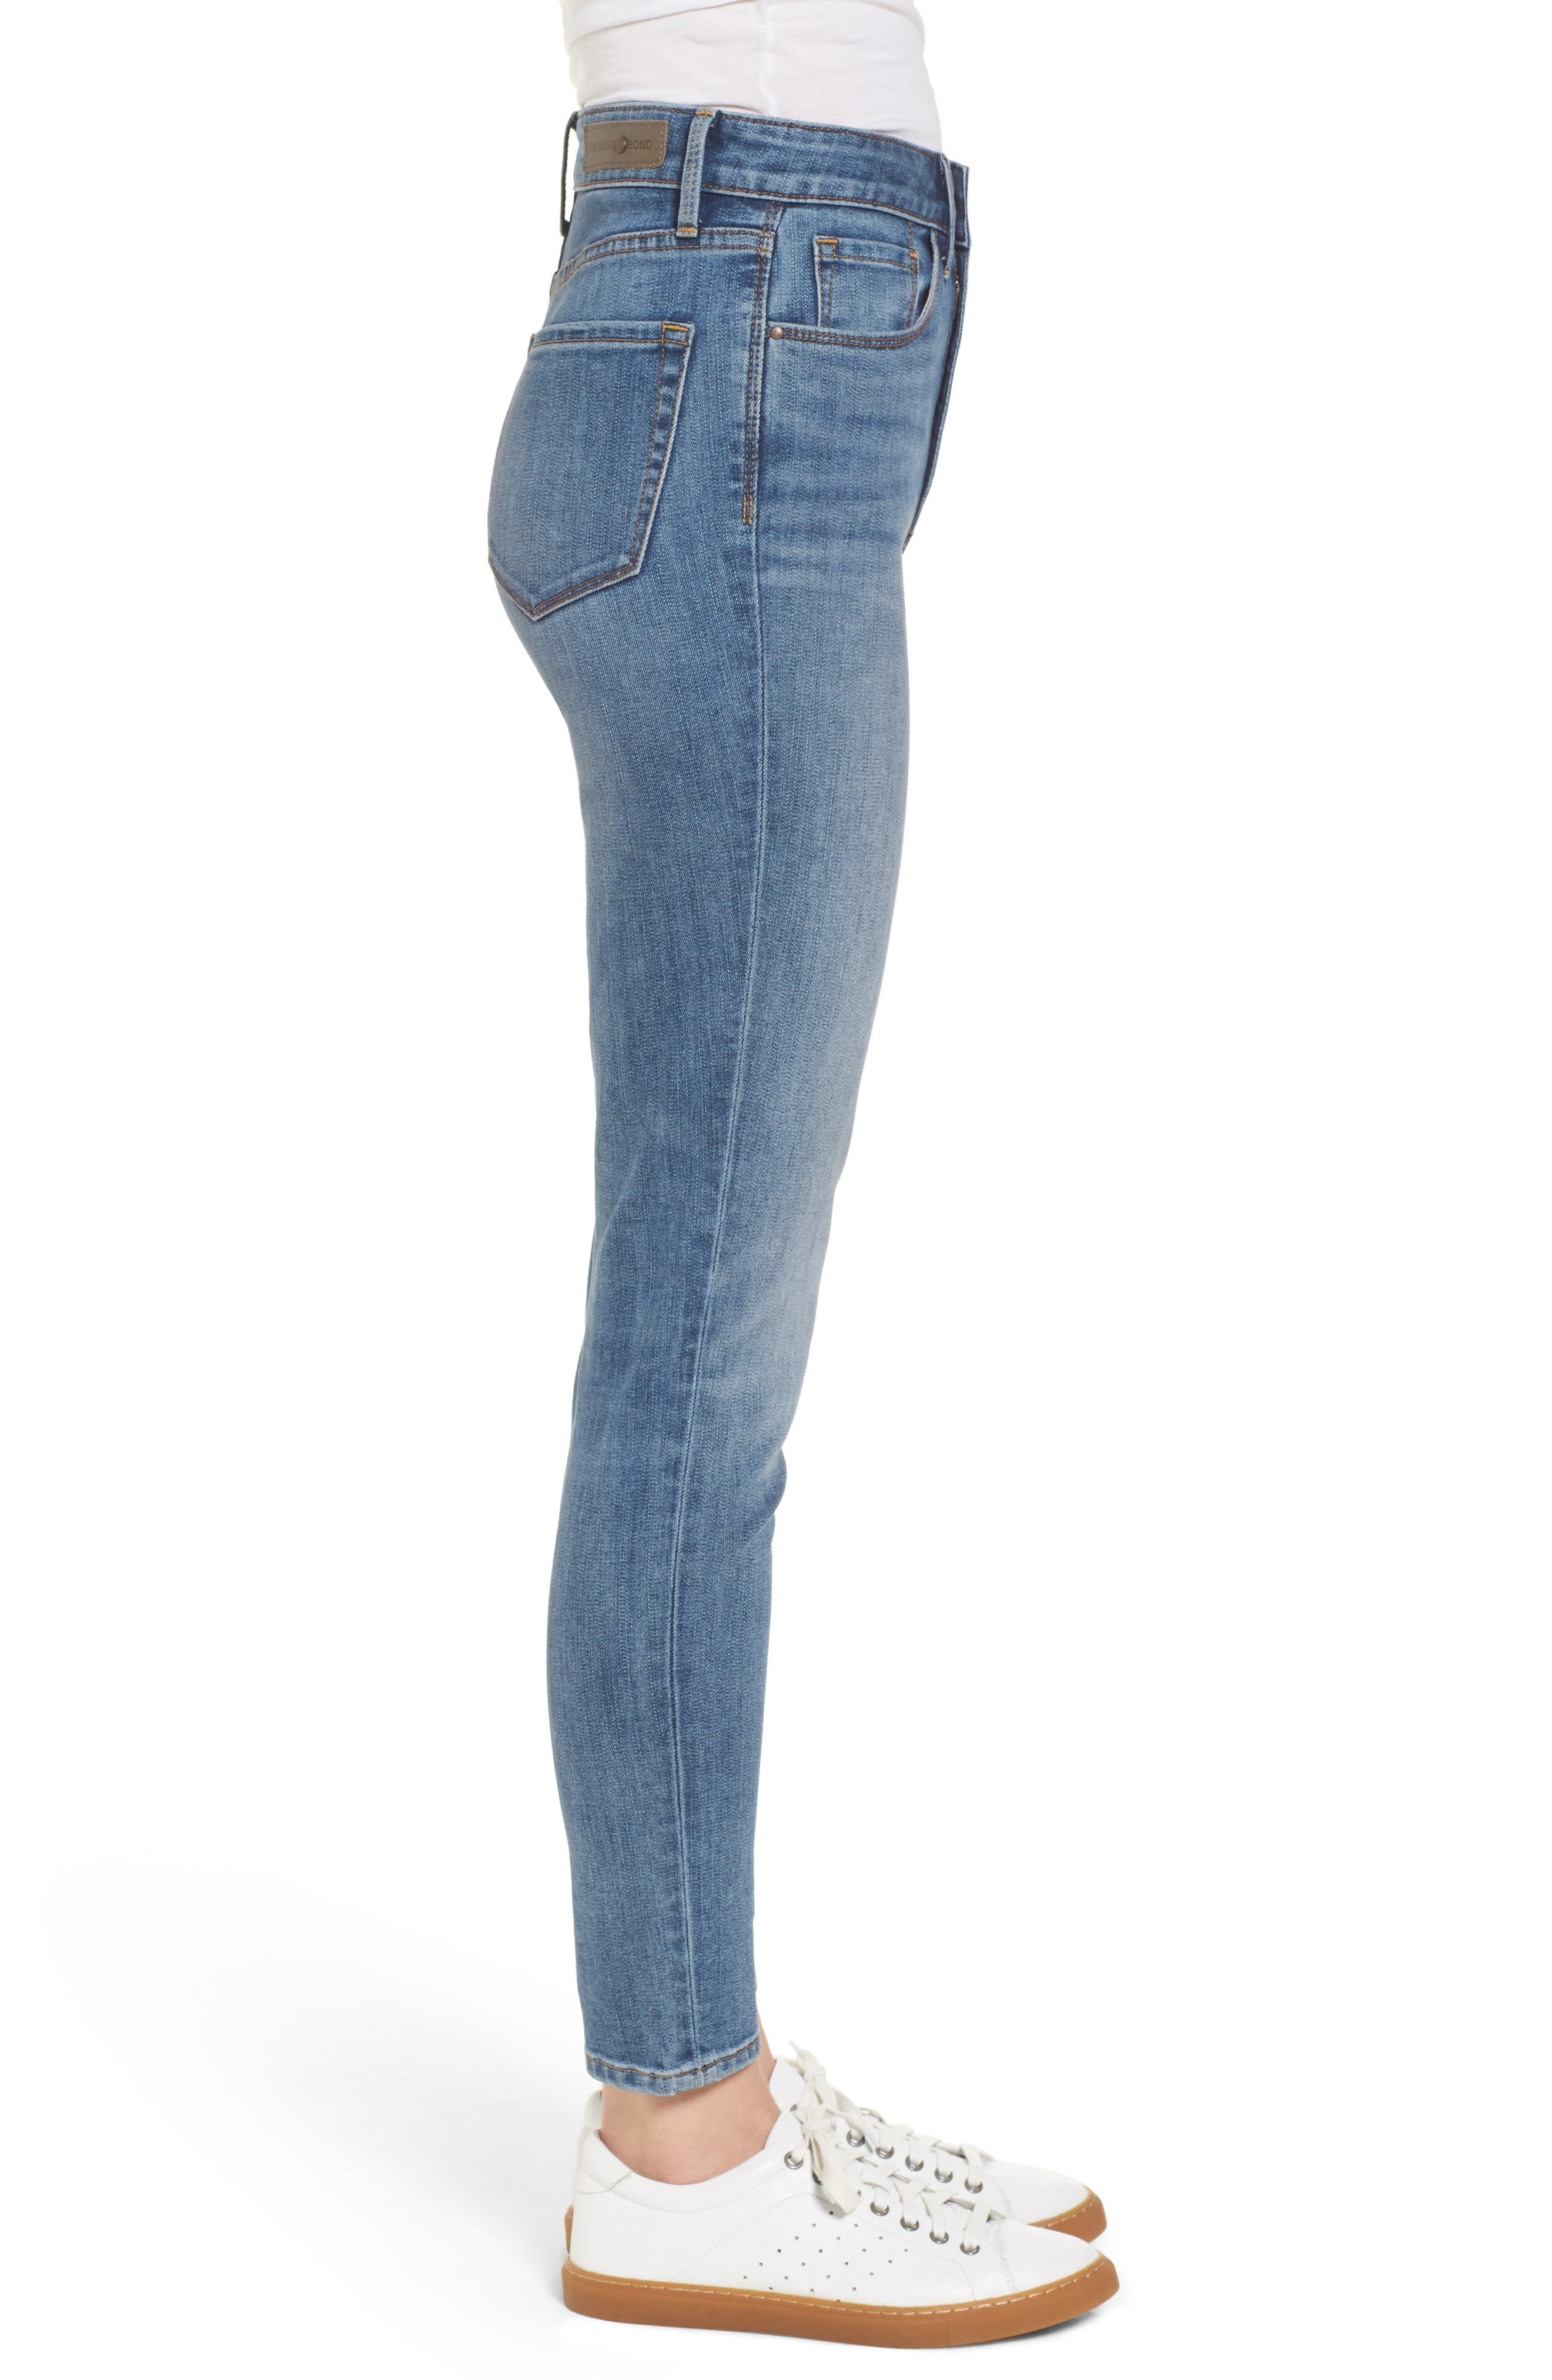 Charity High Waist Skinny Ankle Jeans,                             Alternate thumbnail 3, color,                             400